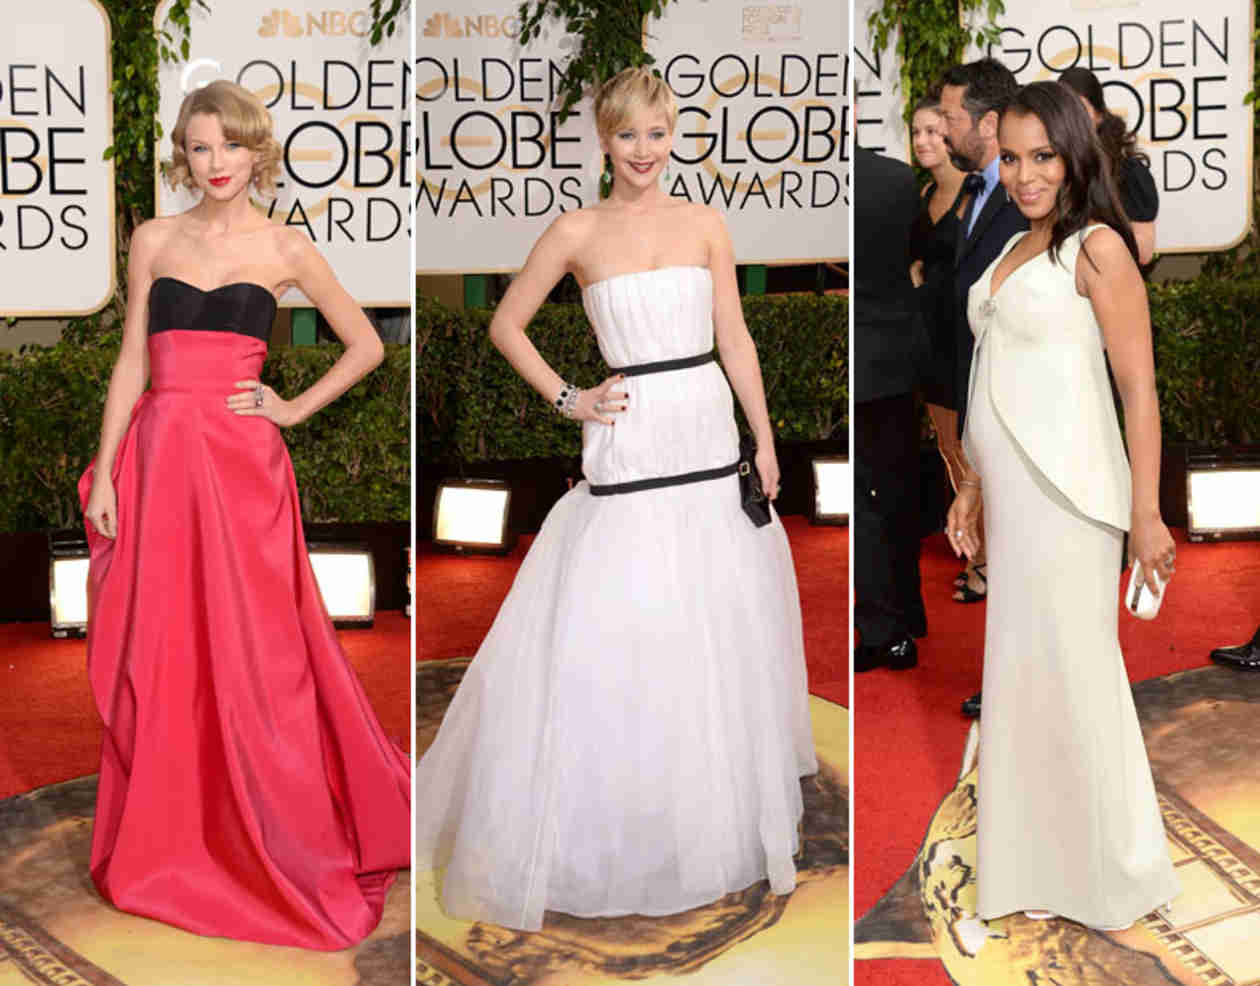 Jennifer Lawrence, Kerry Washington, or Taylor Swift: Which Golden Globe Nominee Would You Hang Out With?